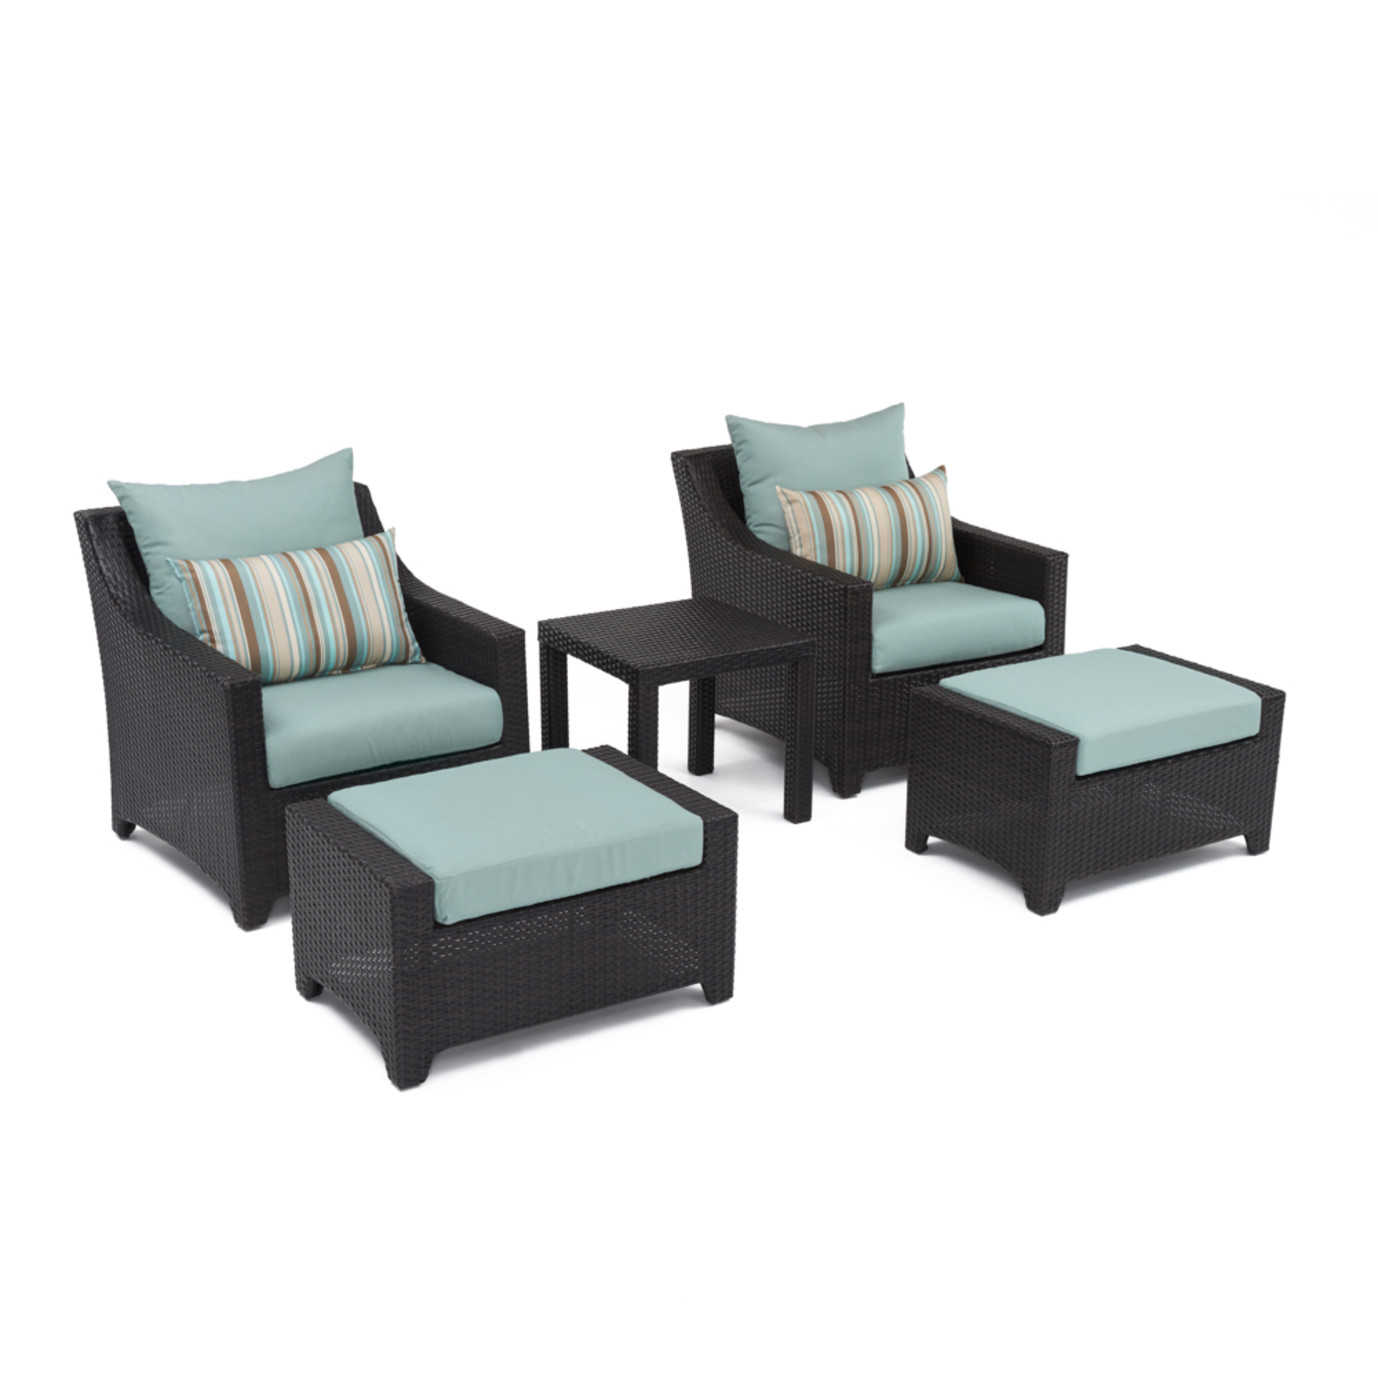 Deco™ 20pc Outdoor Estate Set - Bliss Blue